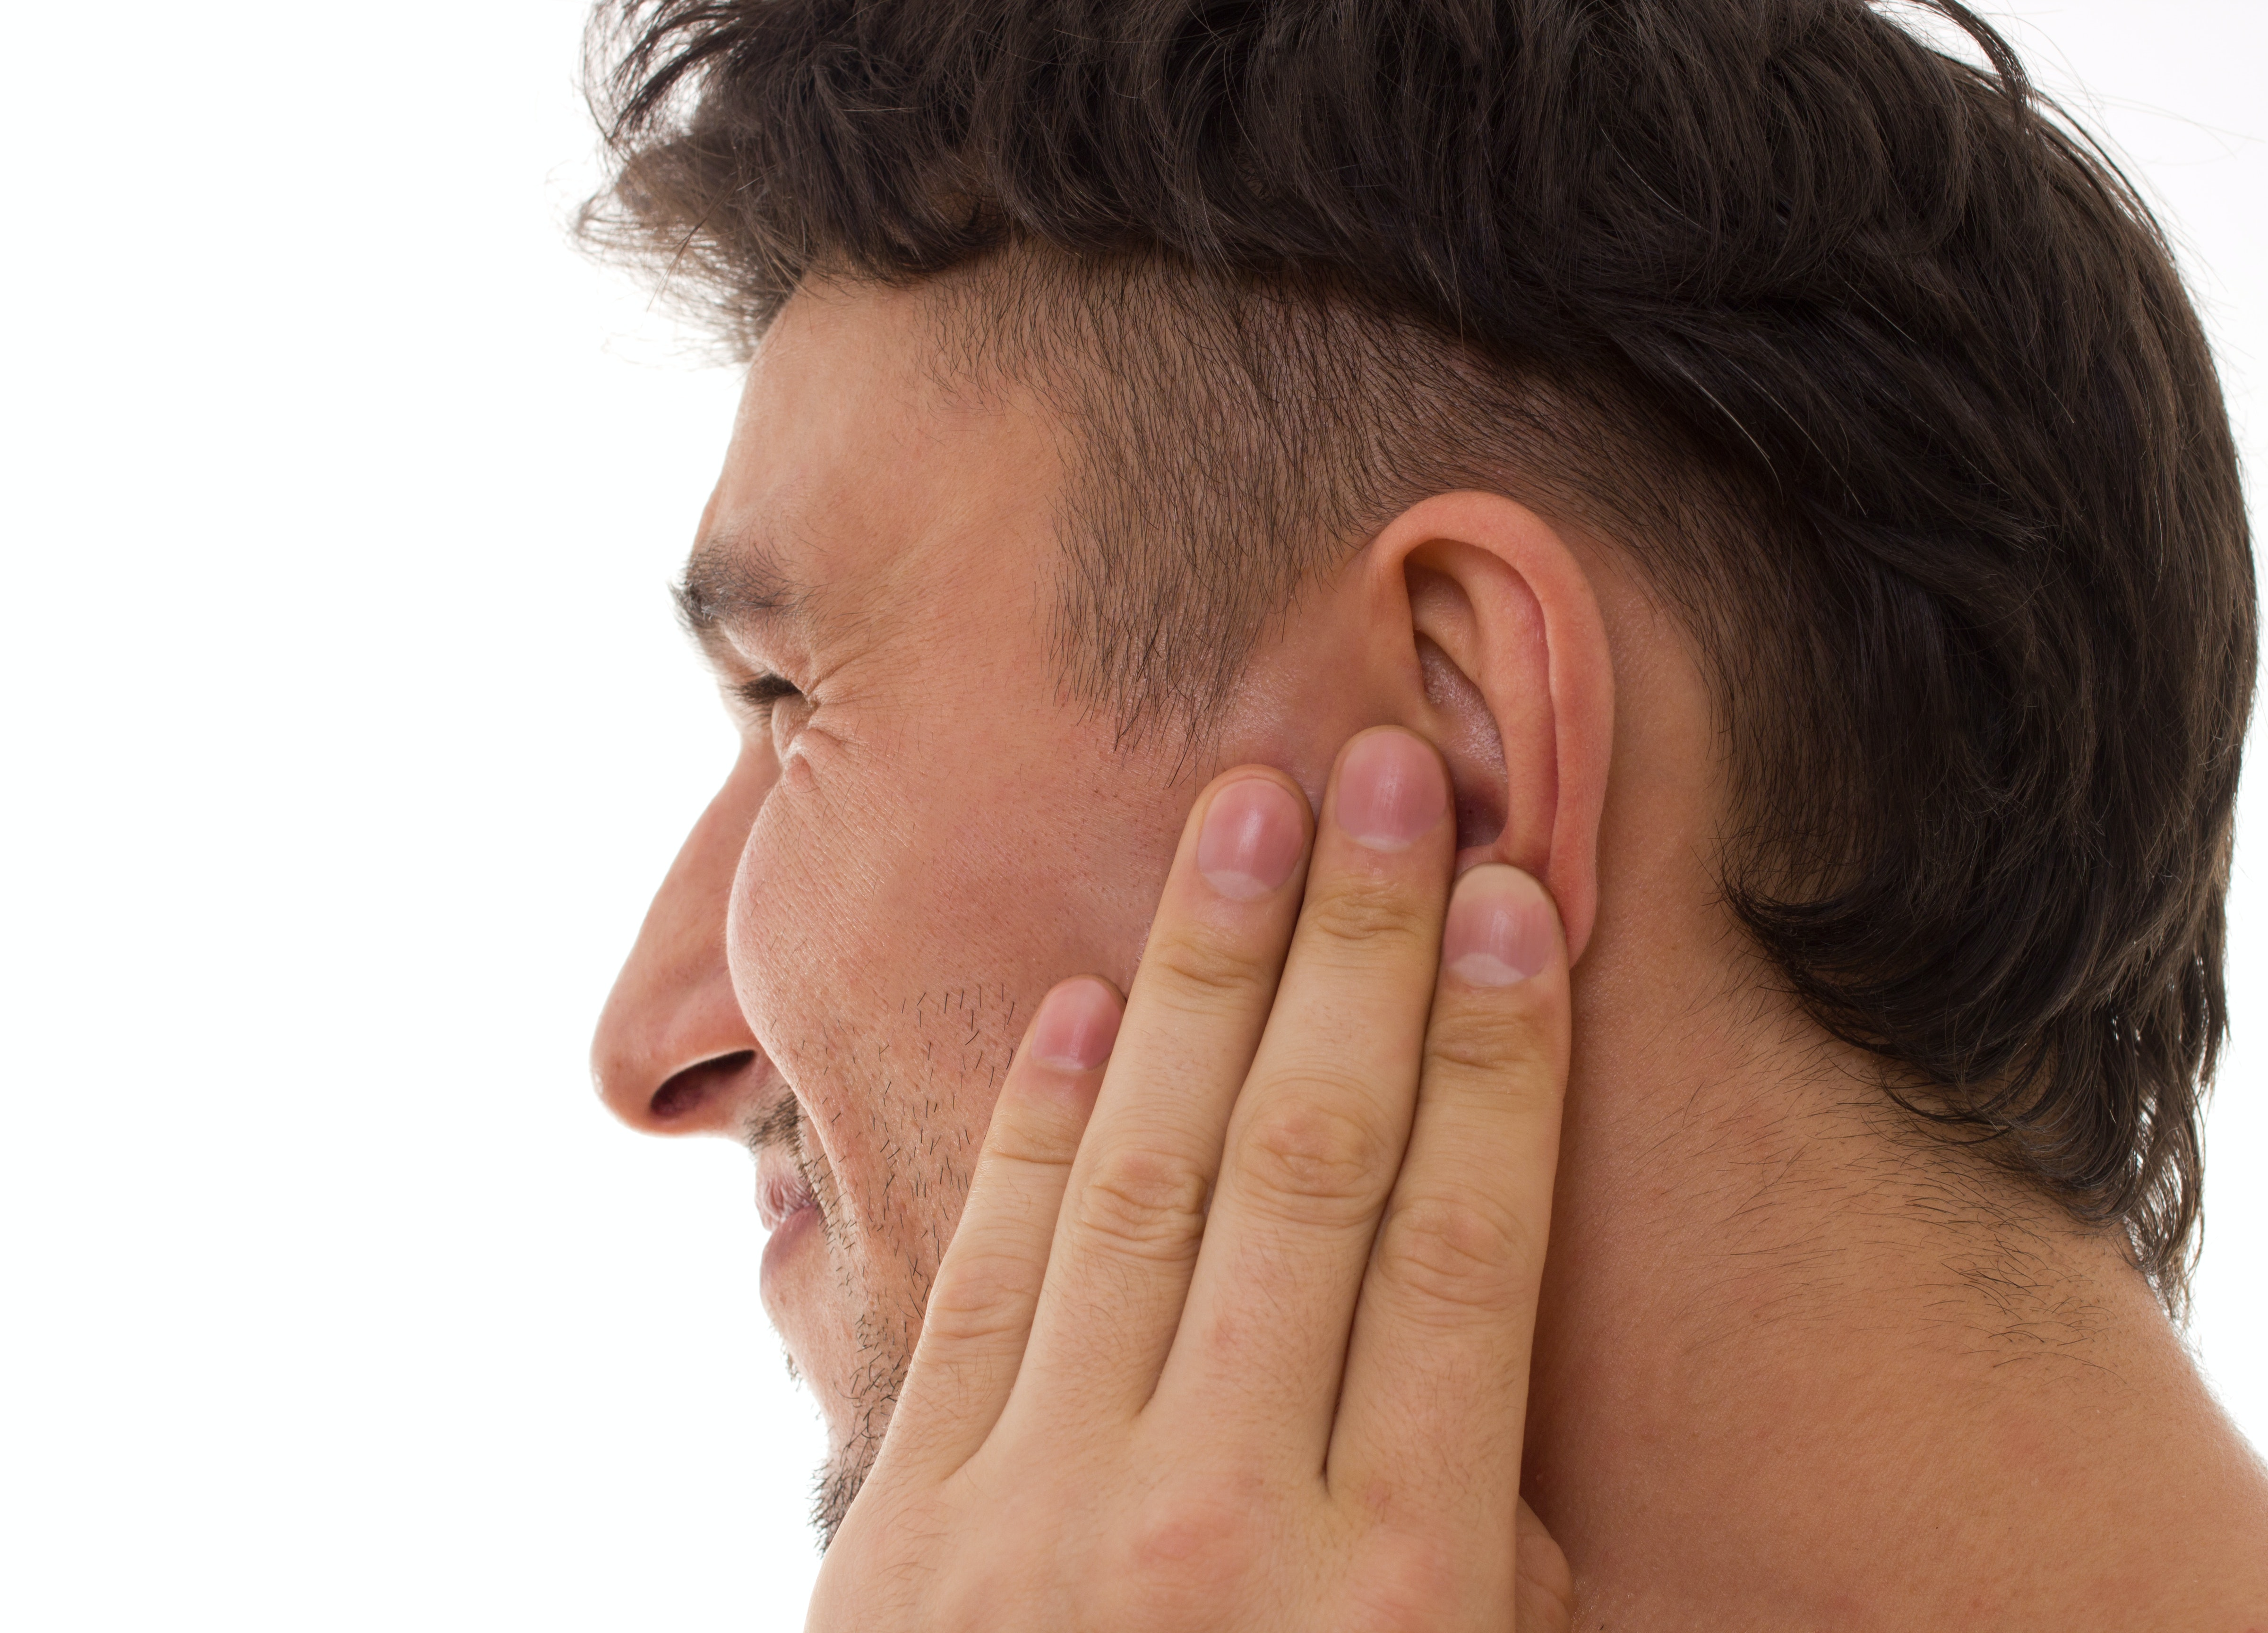 What burns the right ear